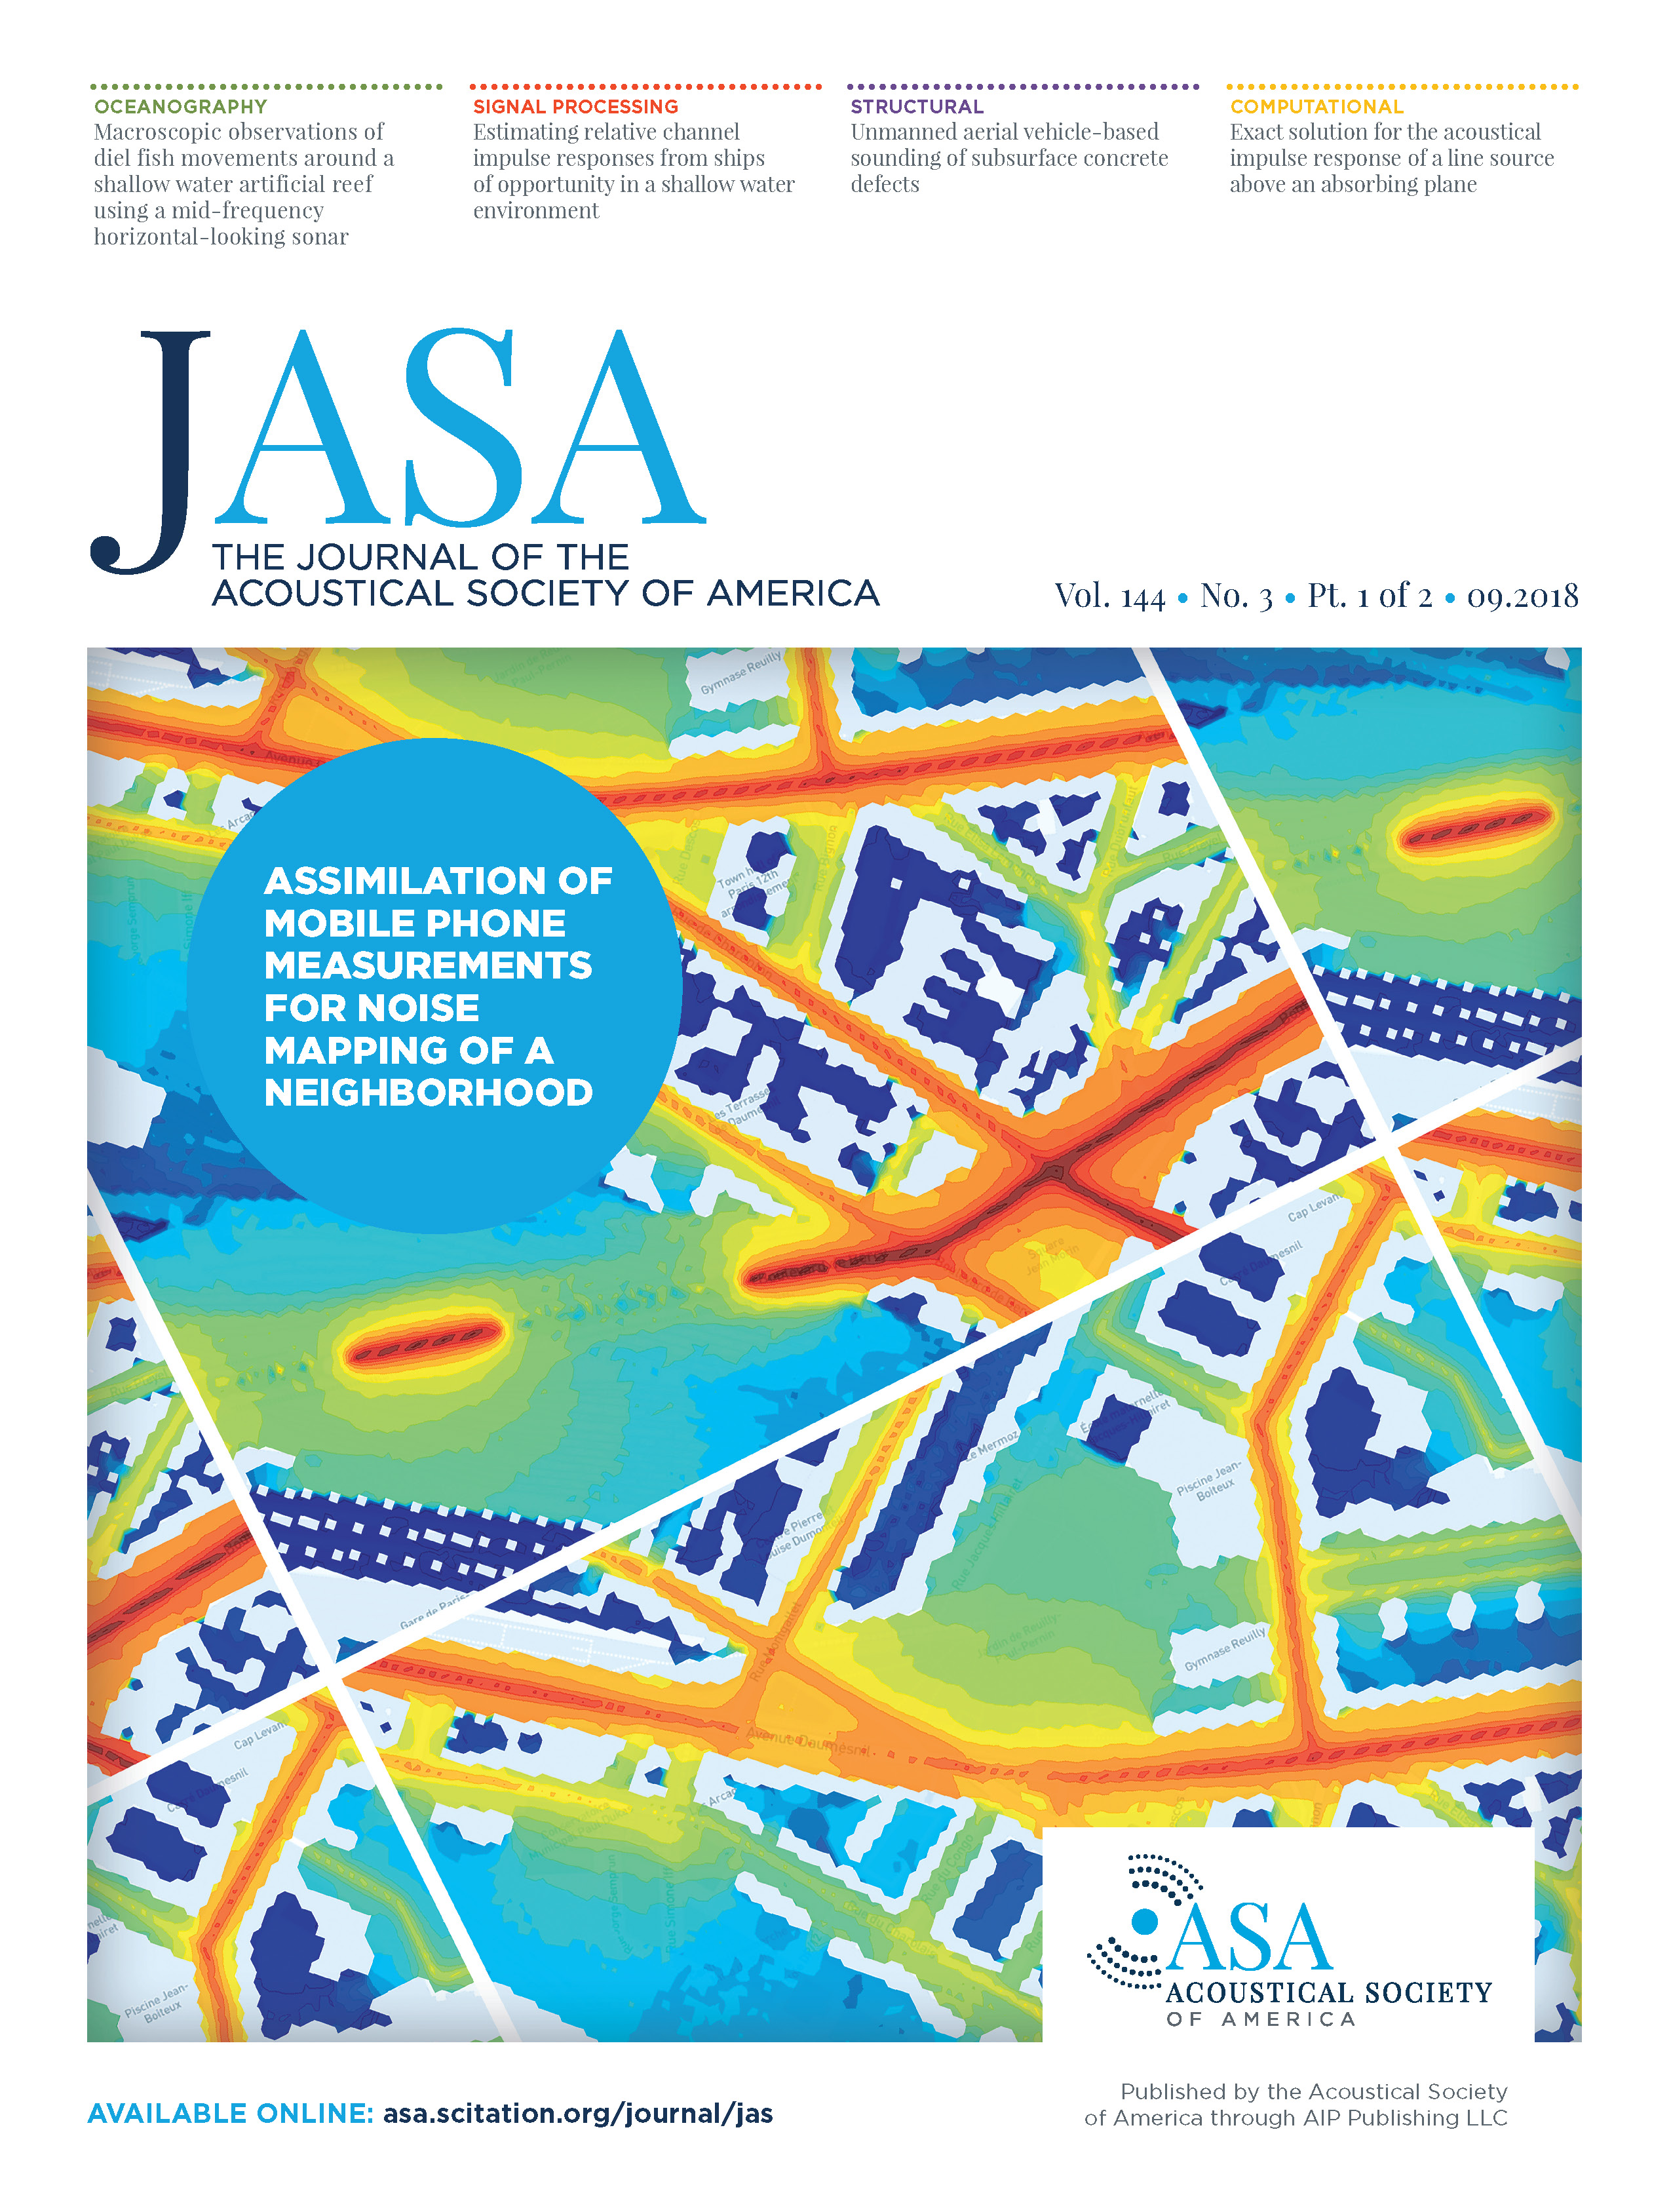 ACOUSTICAL NEWS: The Journal of the Acoustical Society of